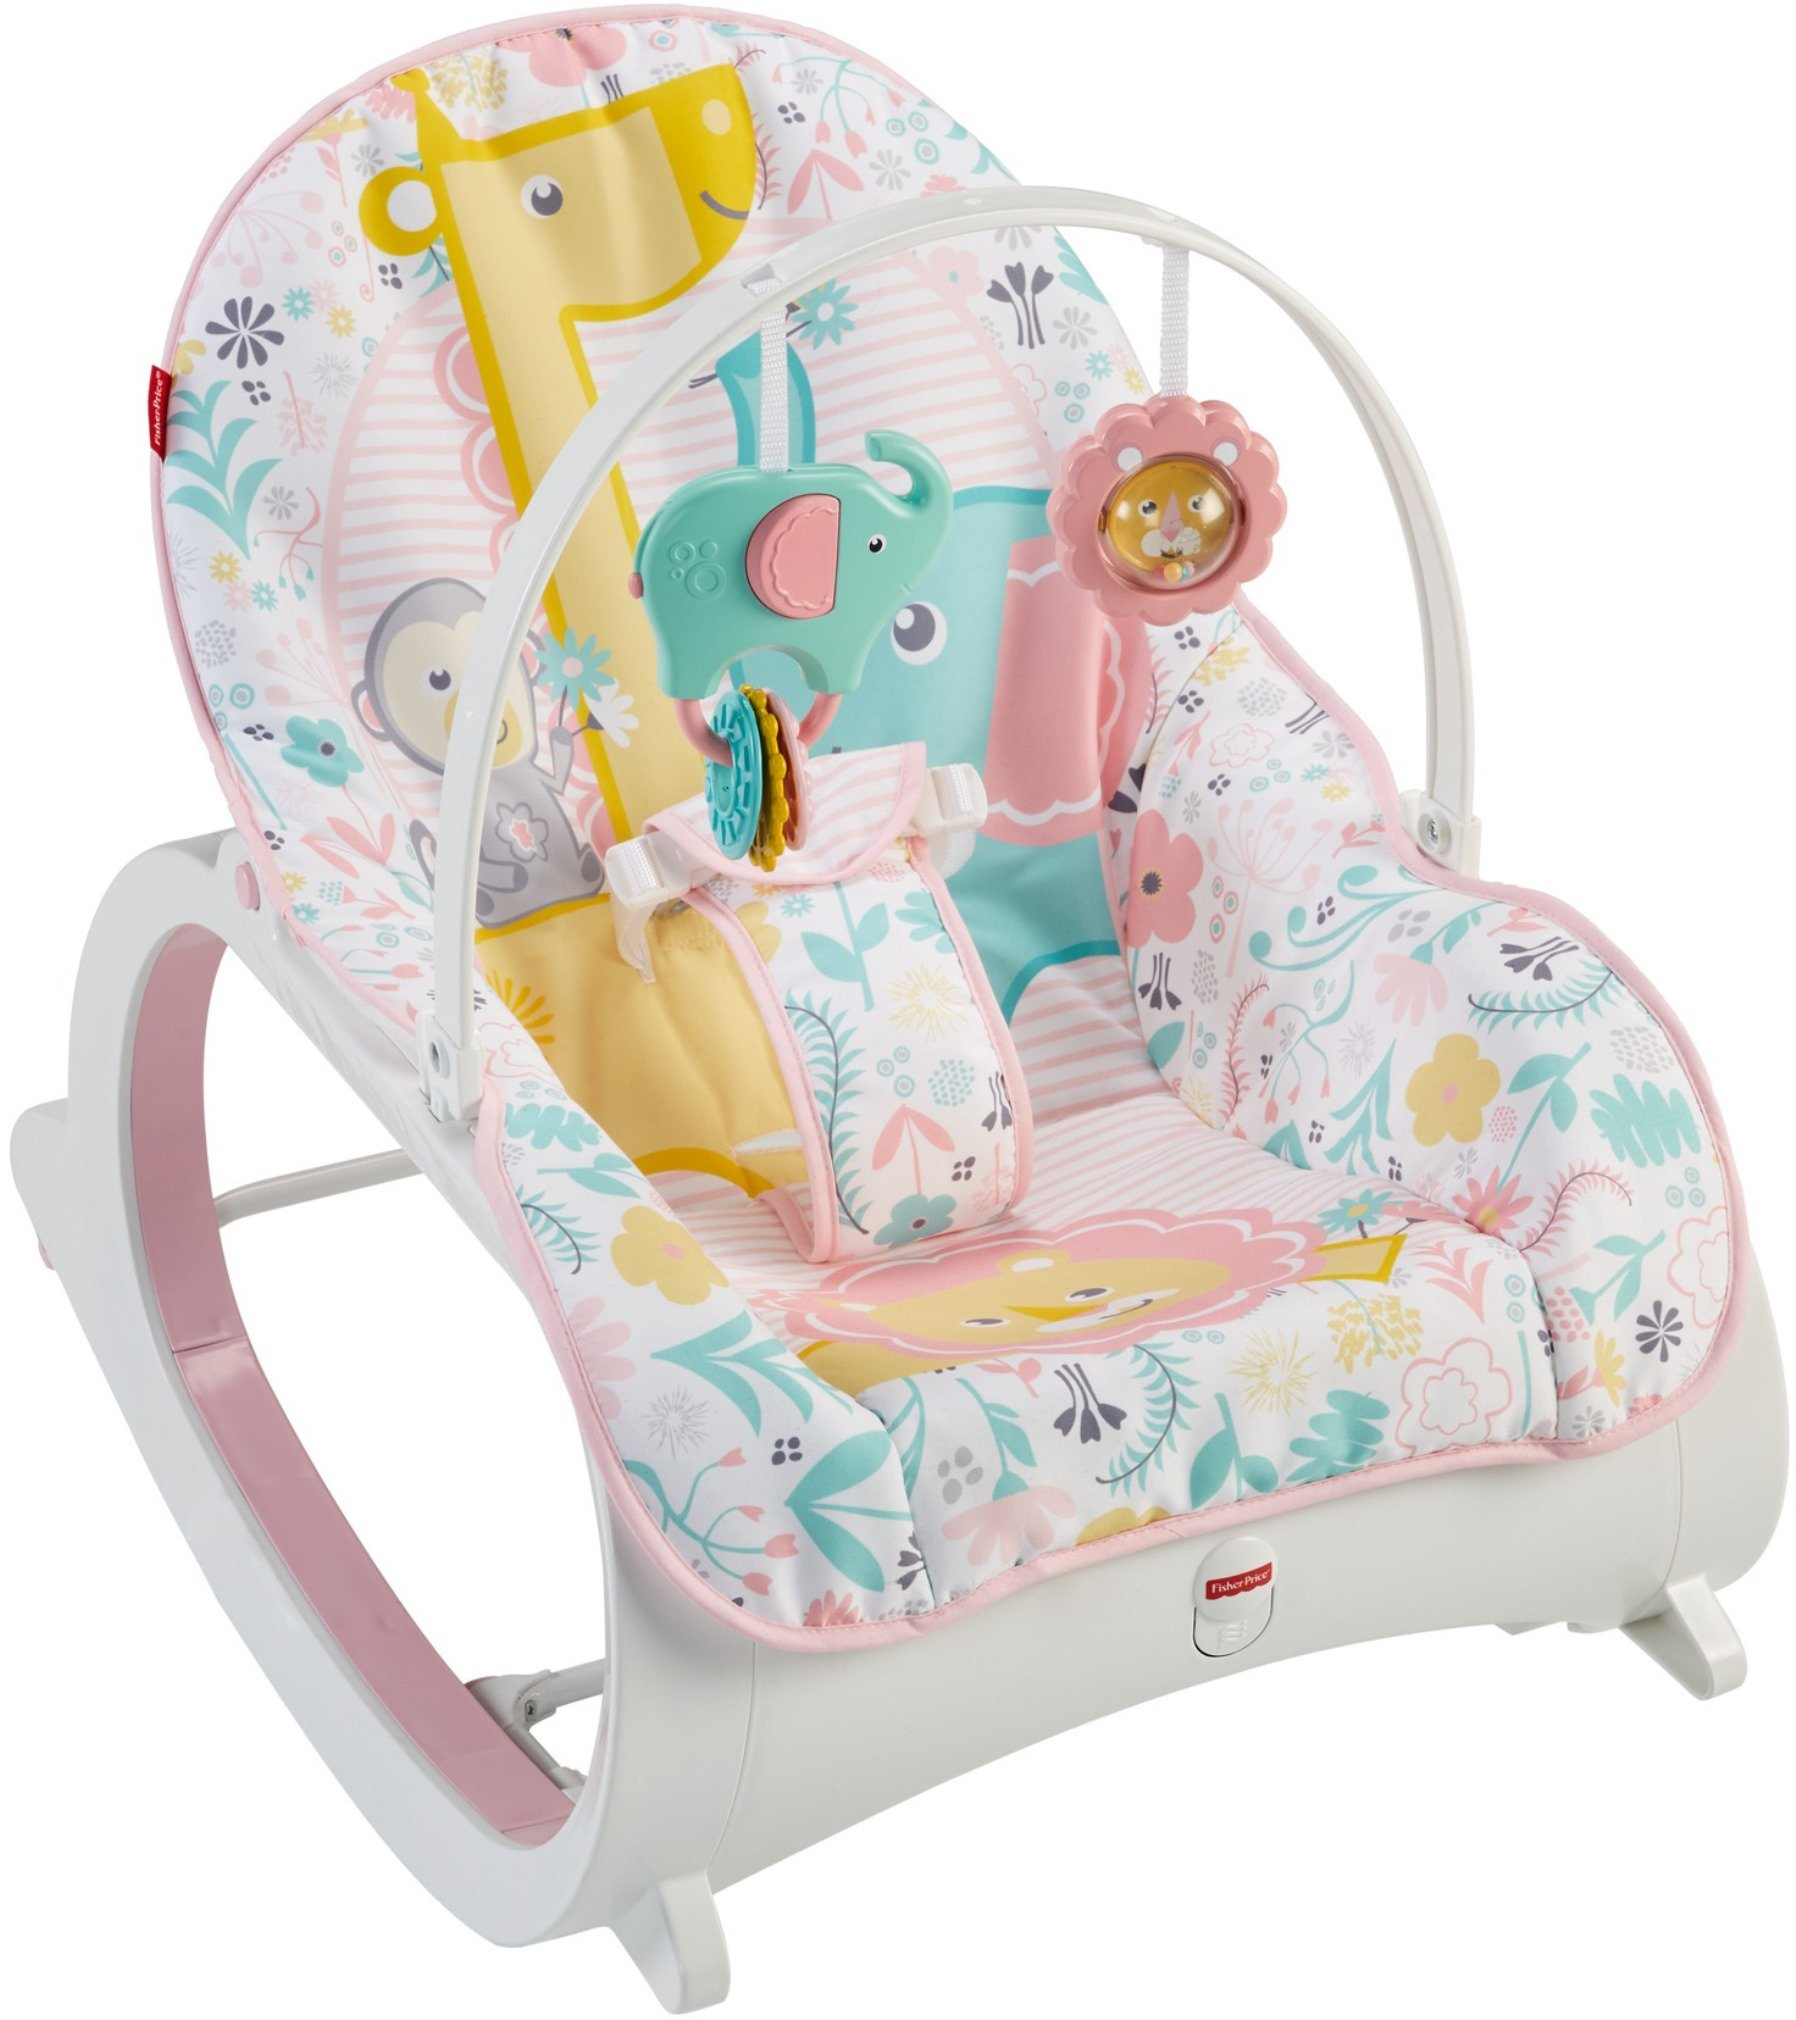 fb747a716 Amazon.com   Fisher-Price Infant-to-Toddler Rocker   Baby